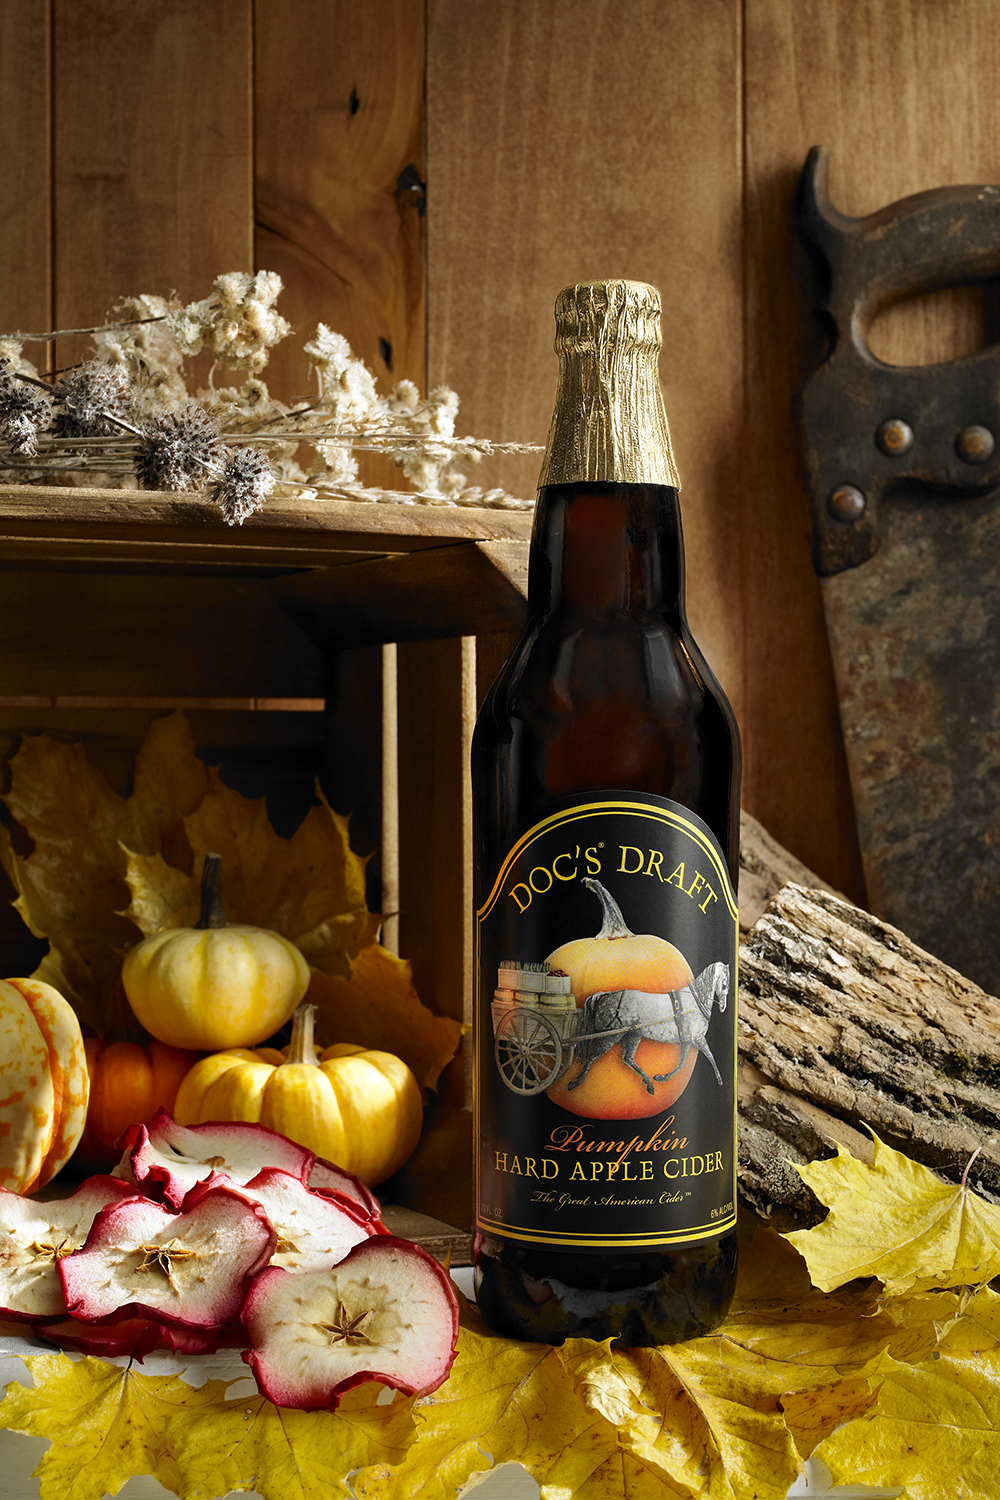 AutumnCider_smaller.jpg